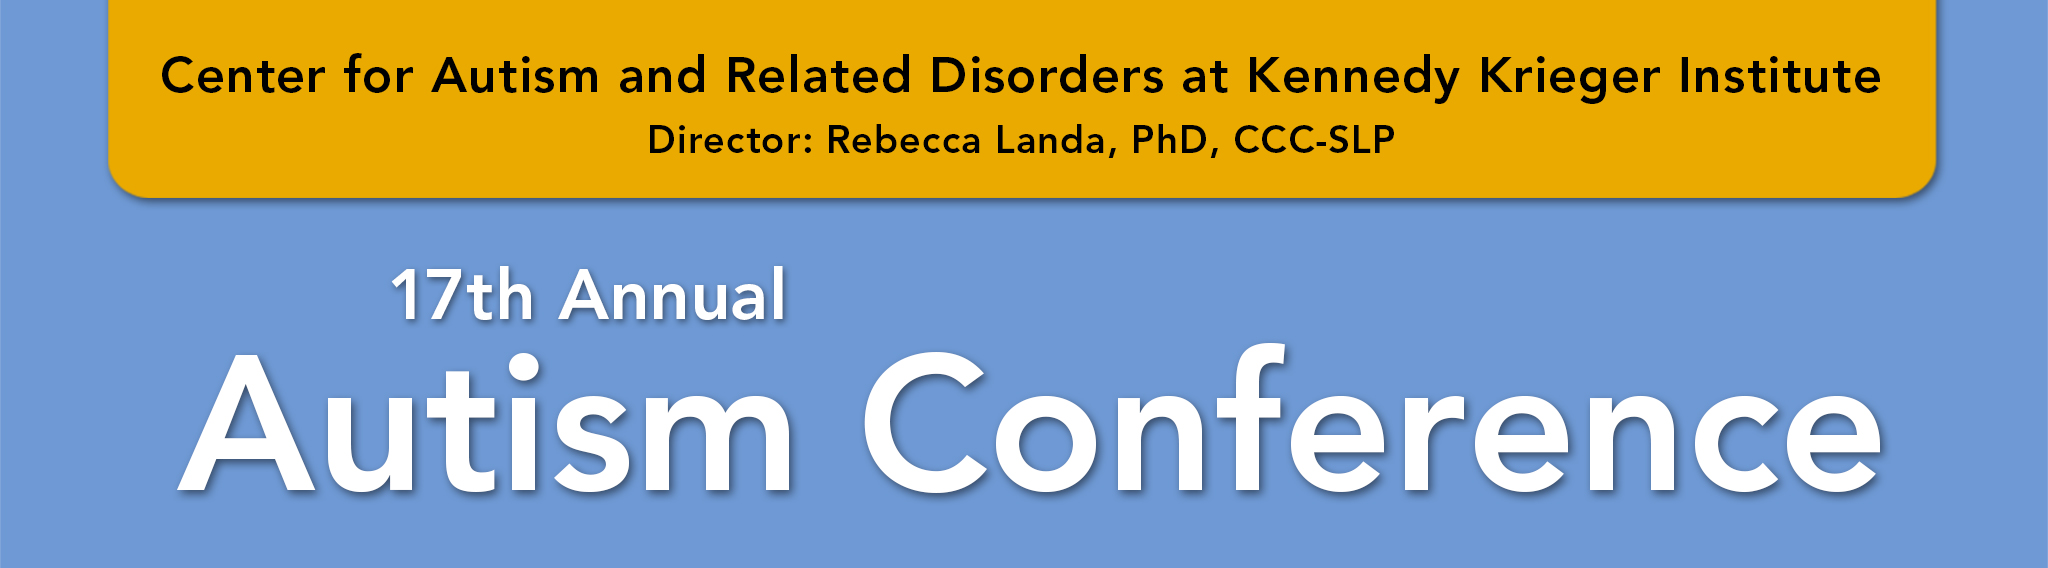 17th Annual Autism Conference